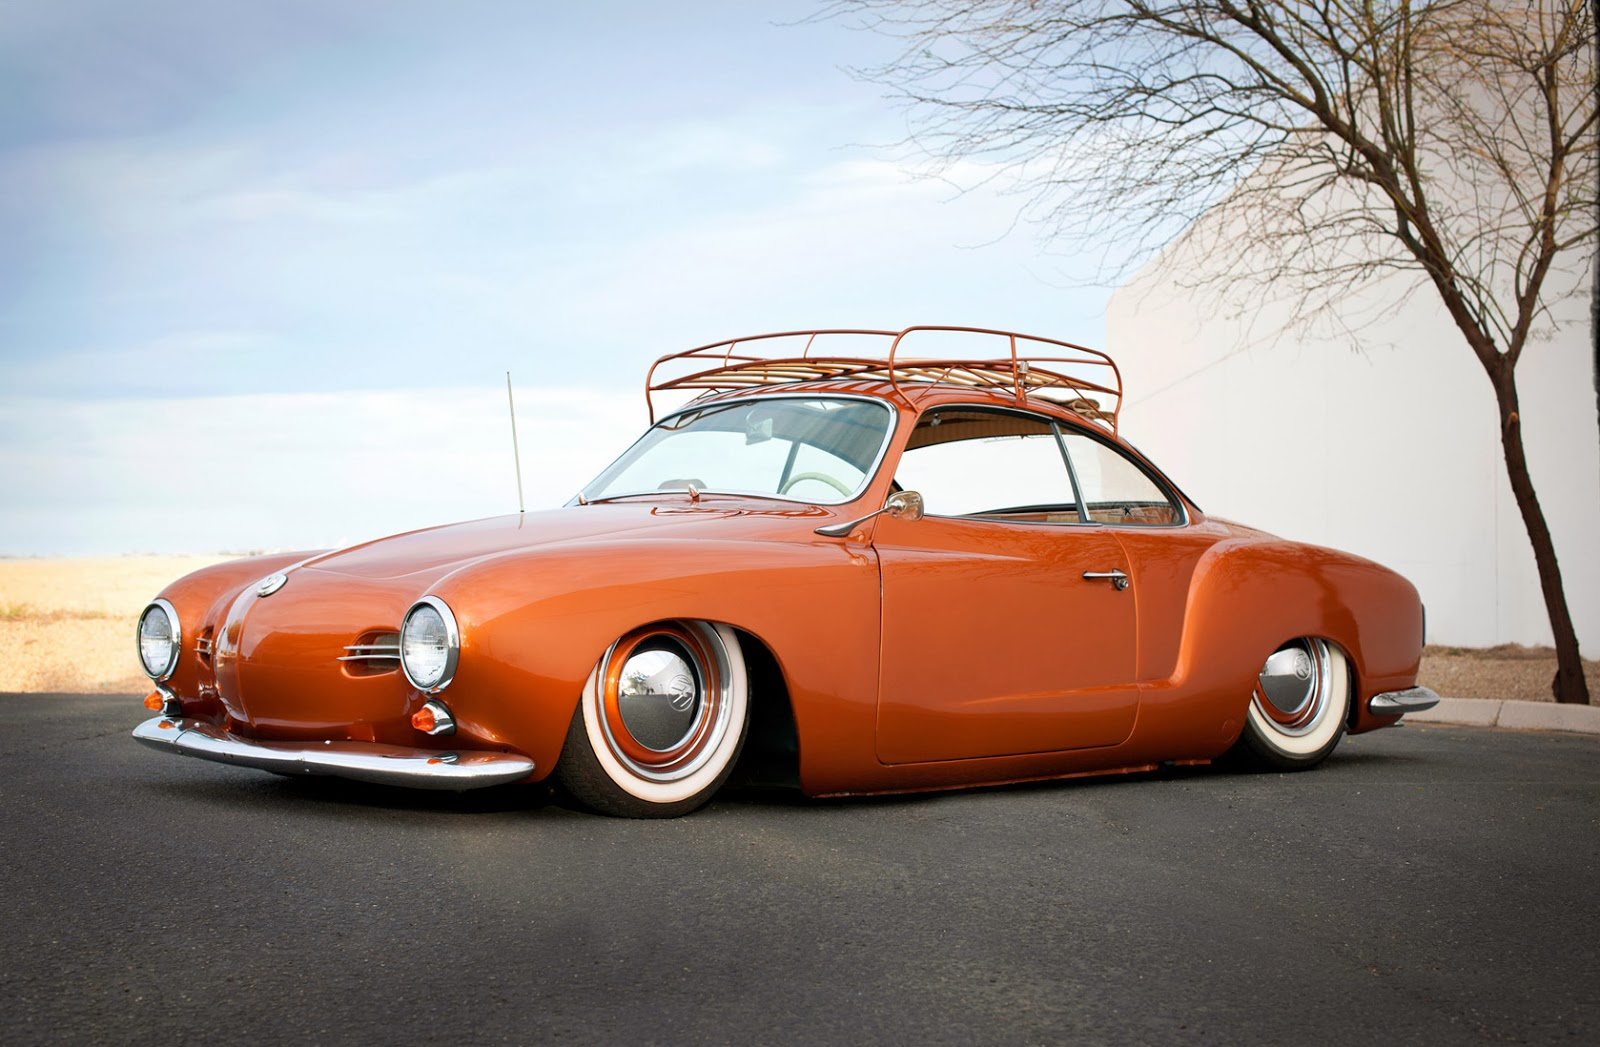 low light 1959 volkswagen karmann ghia auto restorationice. Black Bedroom Furniture Sets. Home Design Ideas